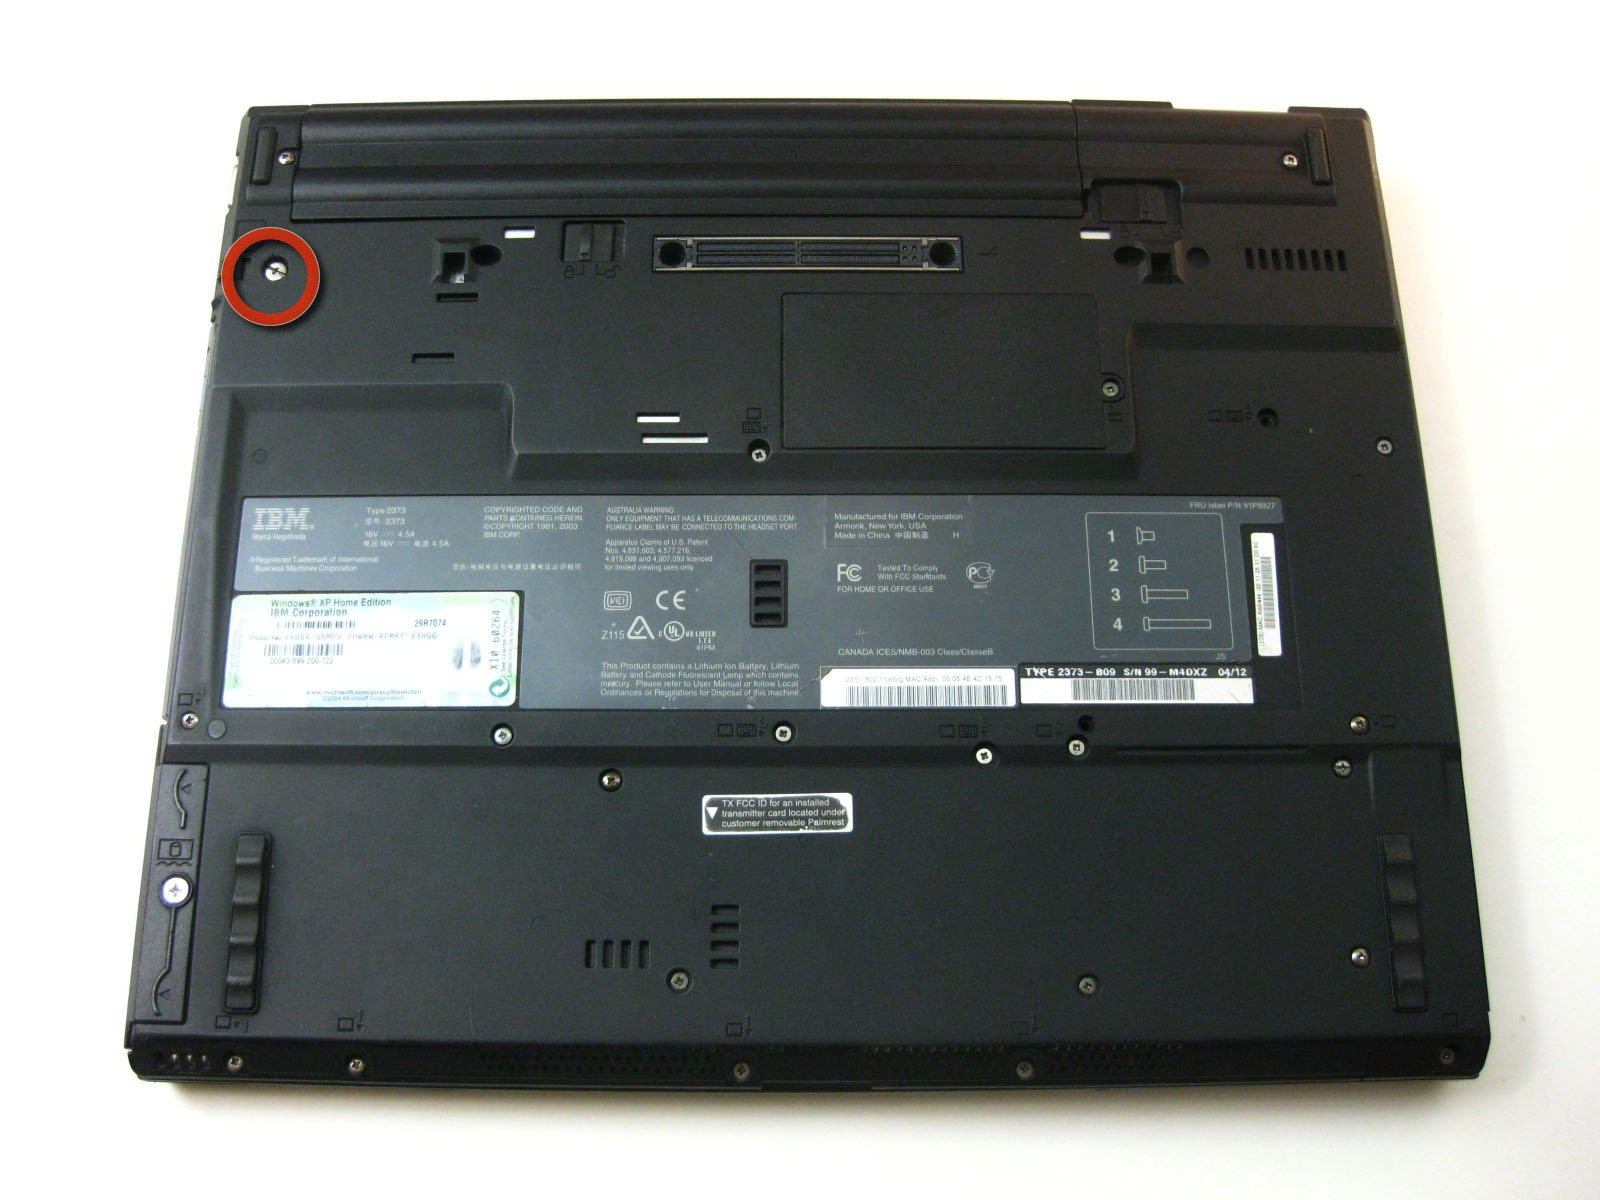 IBM ThinkPad T42 Optical Drive Replacement - iFixit Repair Guide